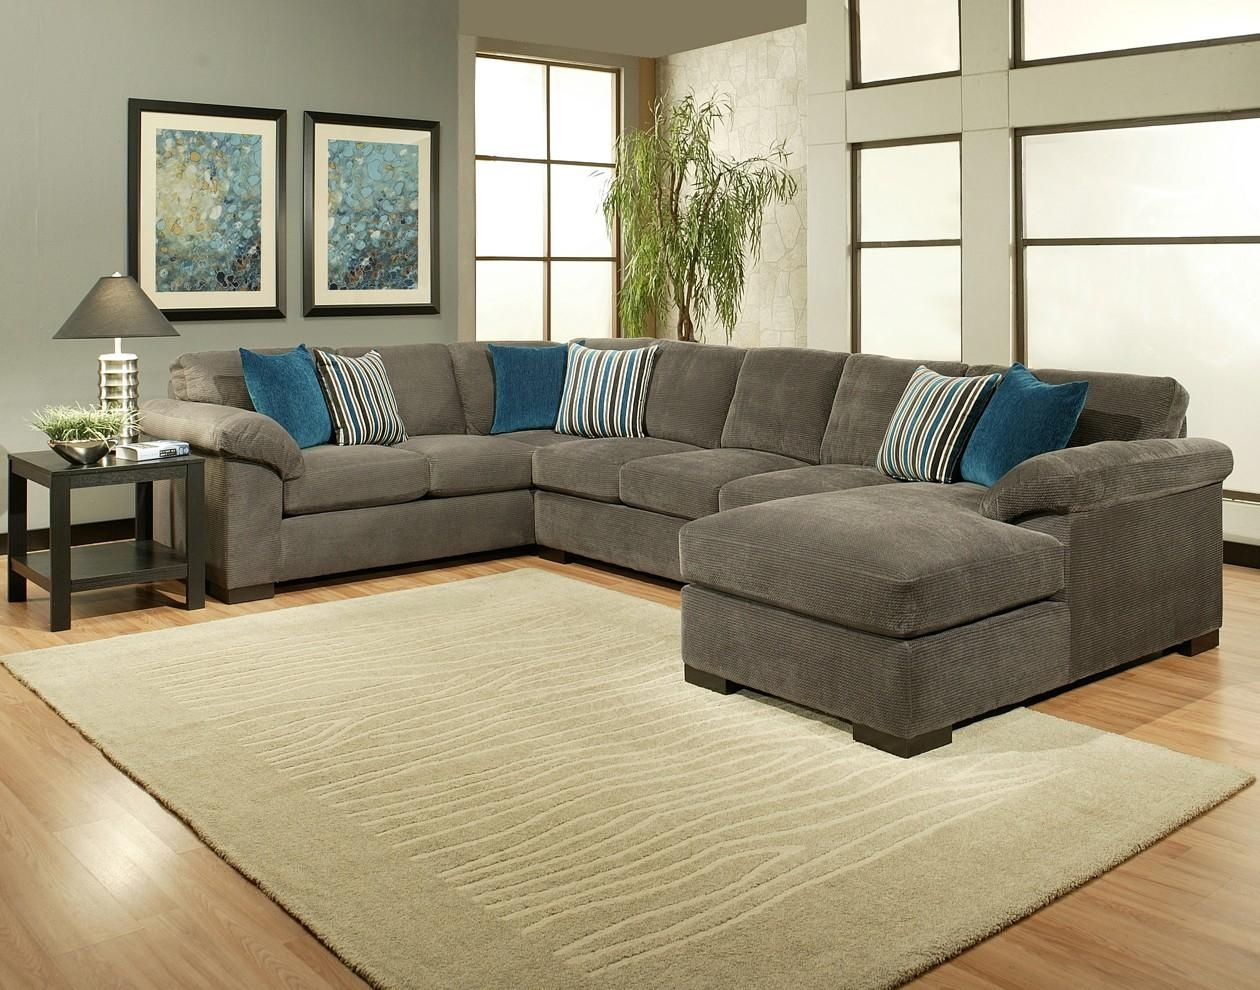 Industries 3 Pc Fire Fly Sectional Sofa In Sealy Sofas (Image 5 of 20)